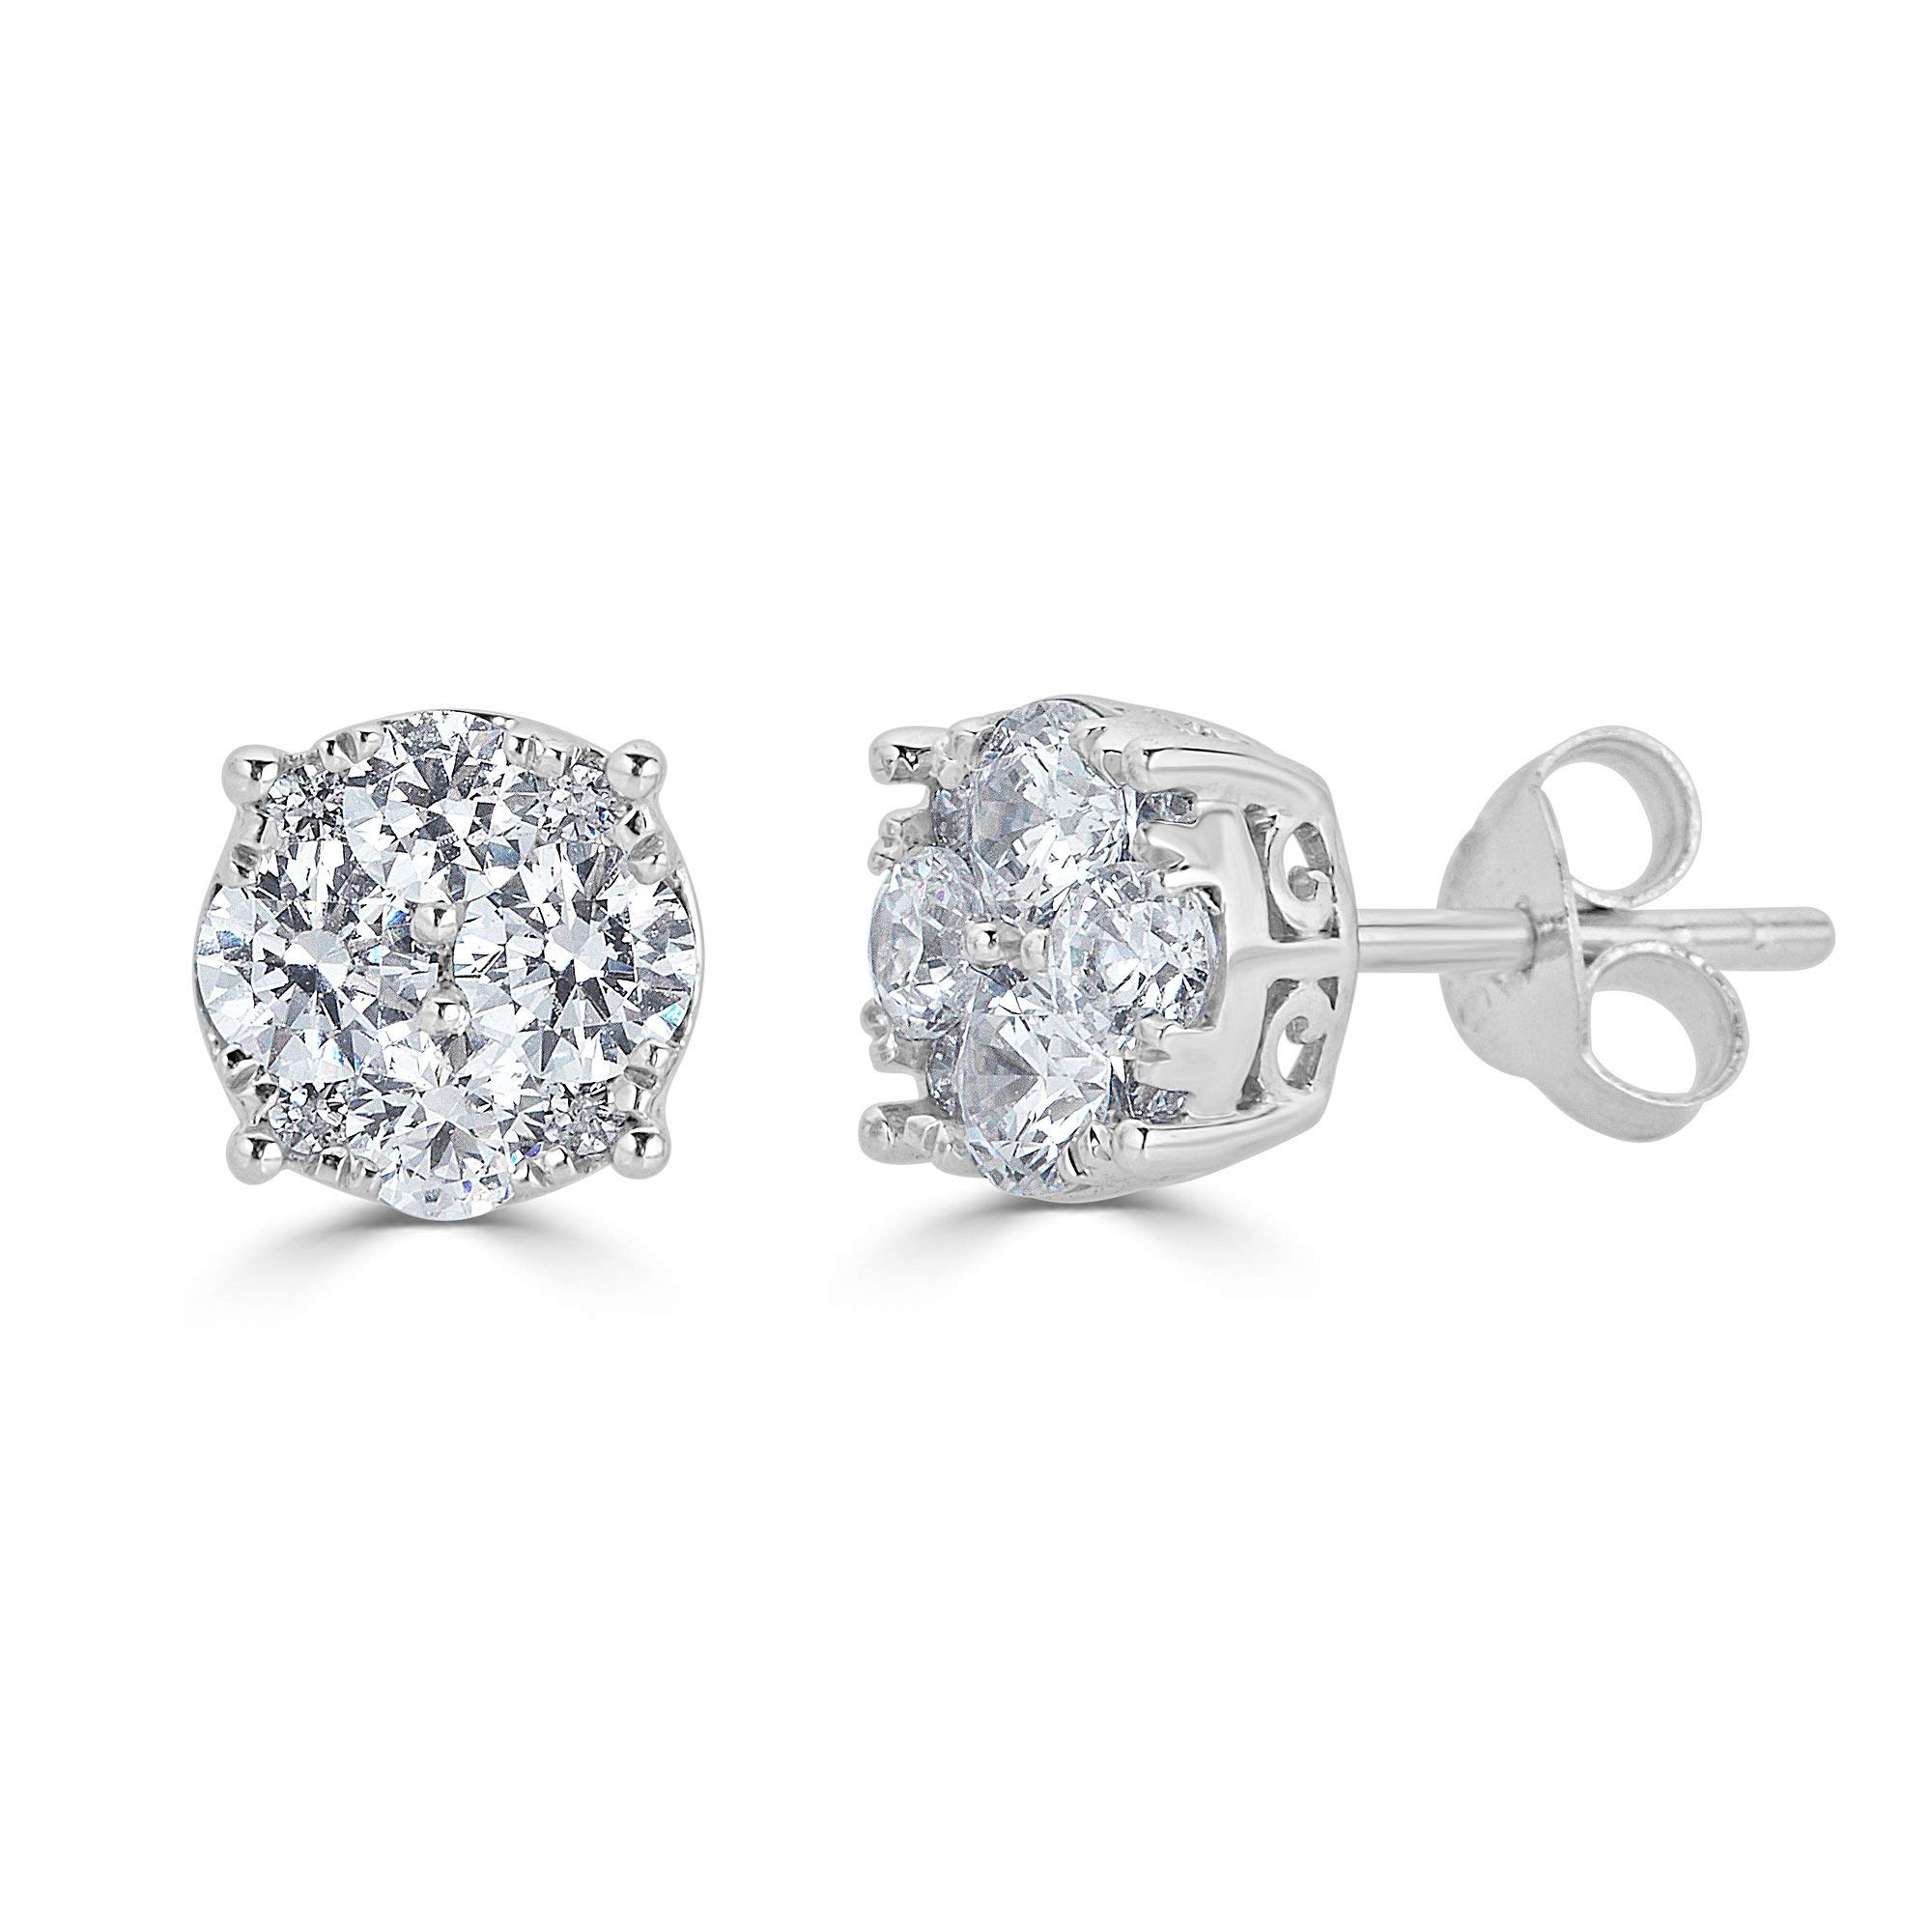 1/4Ct Women Round Diamond Stud Earrings Set In Sterling Silver by Fifth and Fine